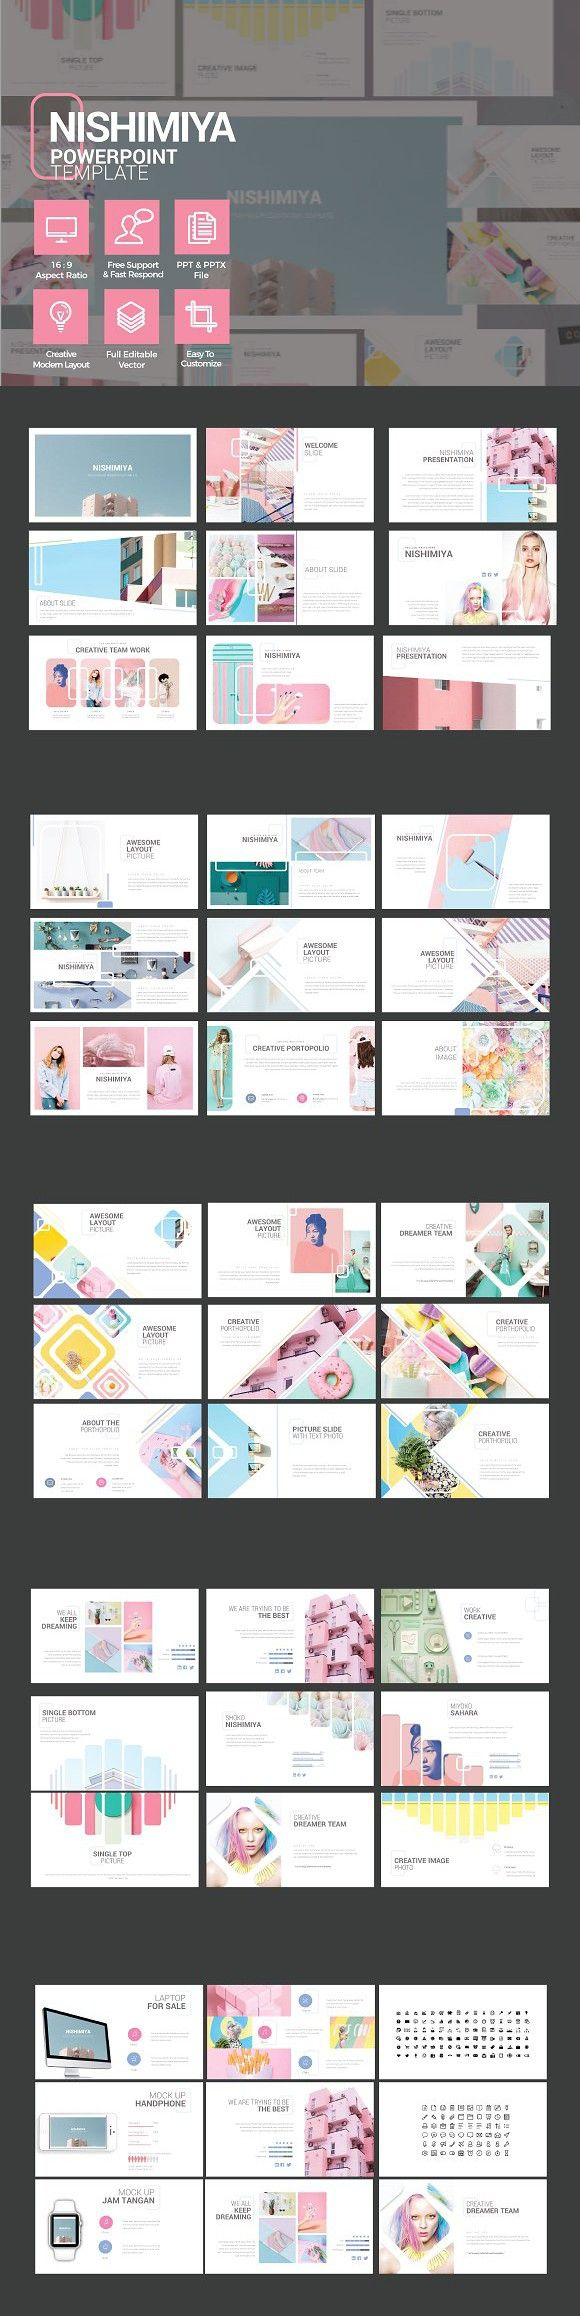 NISHIMIYA - MULTIPURPOSE POWERPOINT. Presentation Templates